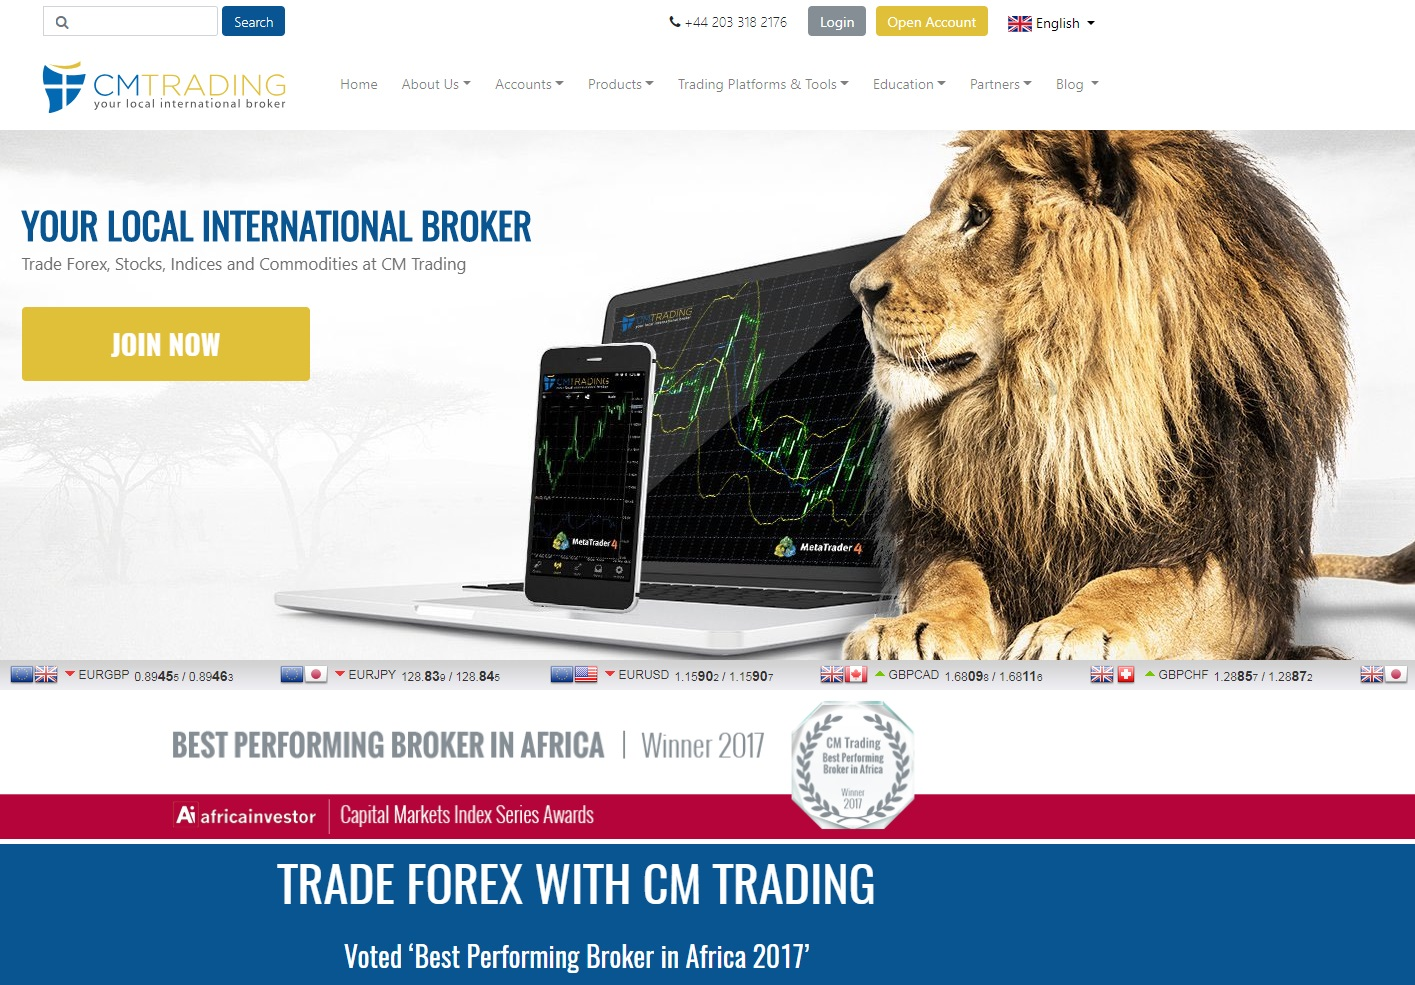 CM Trading Review - Broker Platform, Leverage, Signals, License, Deposits, Withdrawals | Hot ...